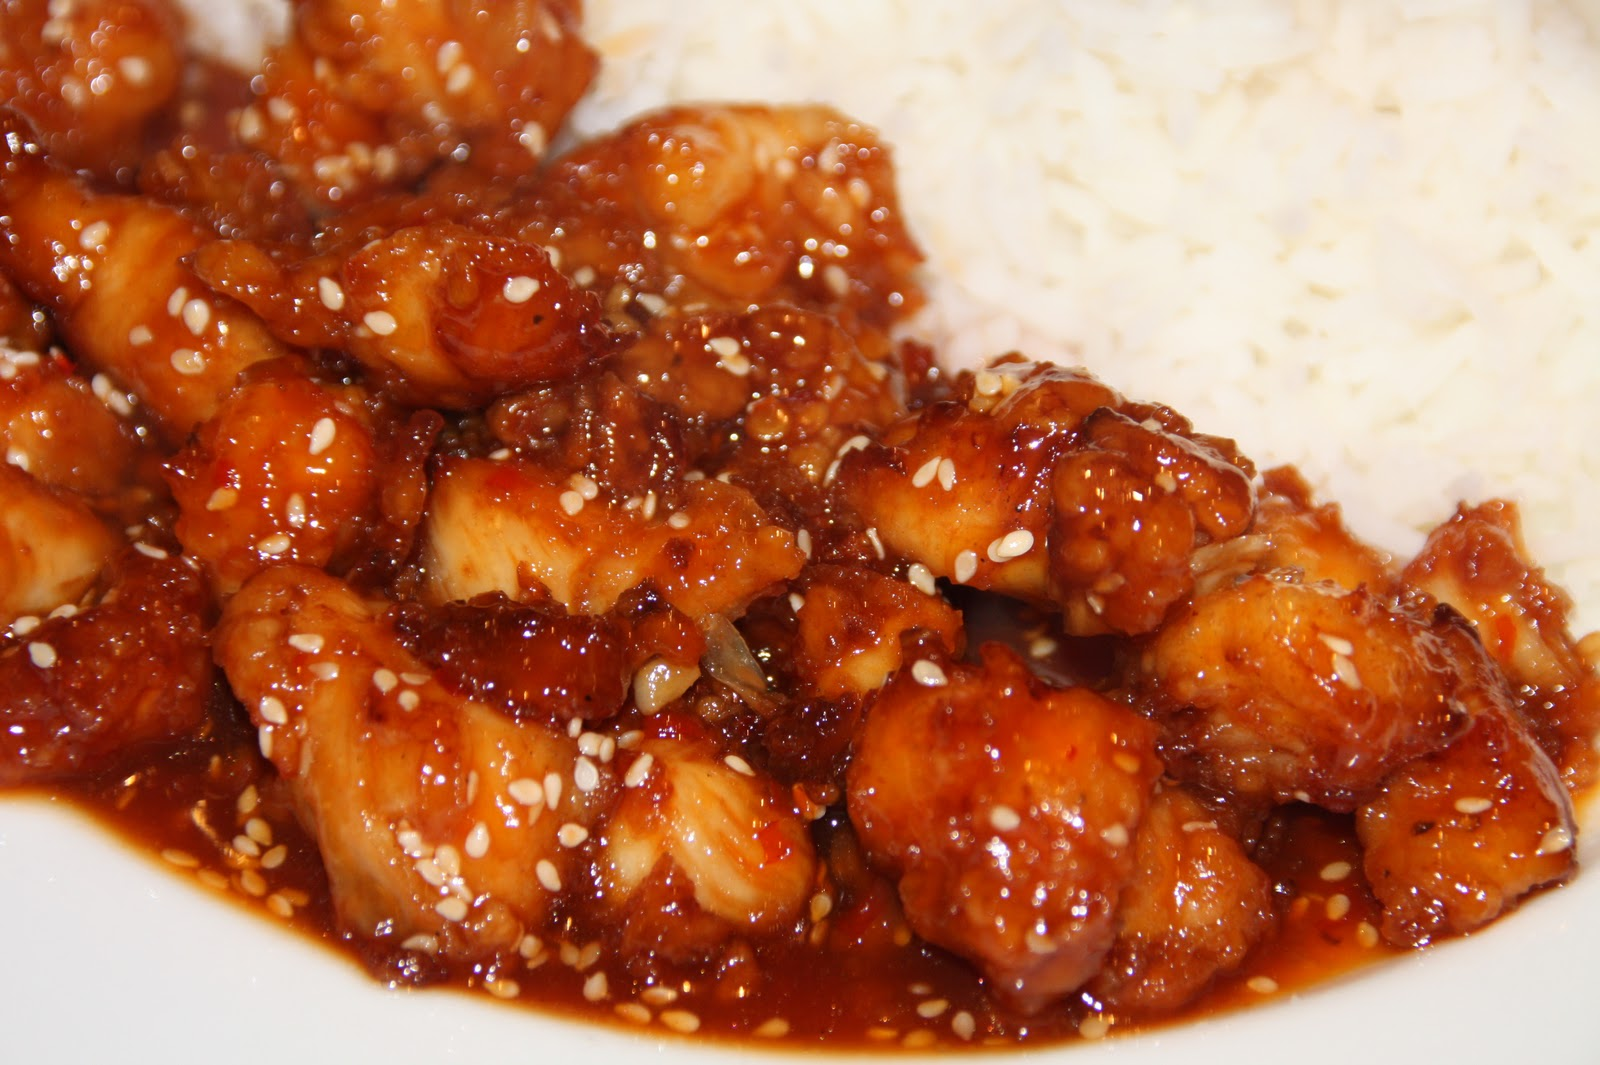 At Home with Mrs M!: Honey Sesame Chicken